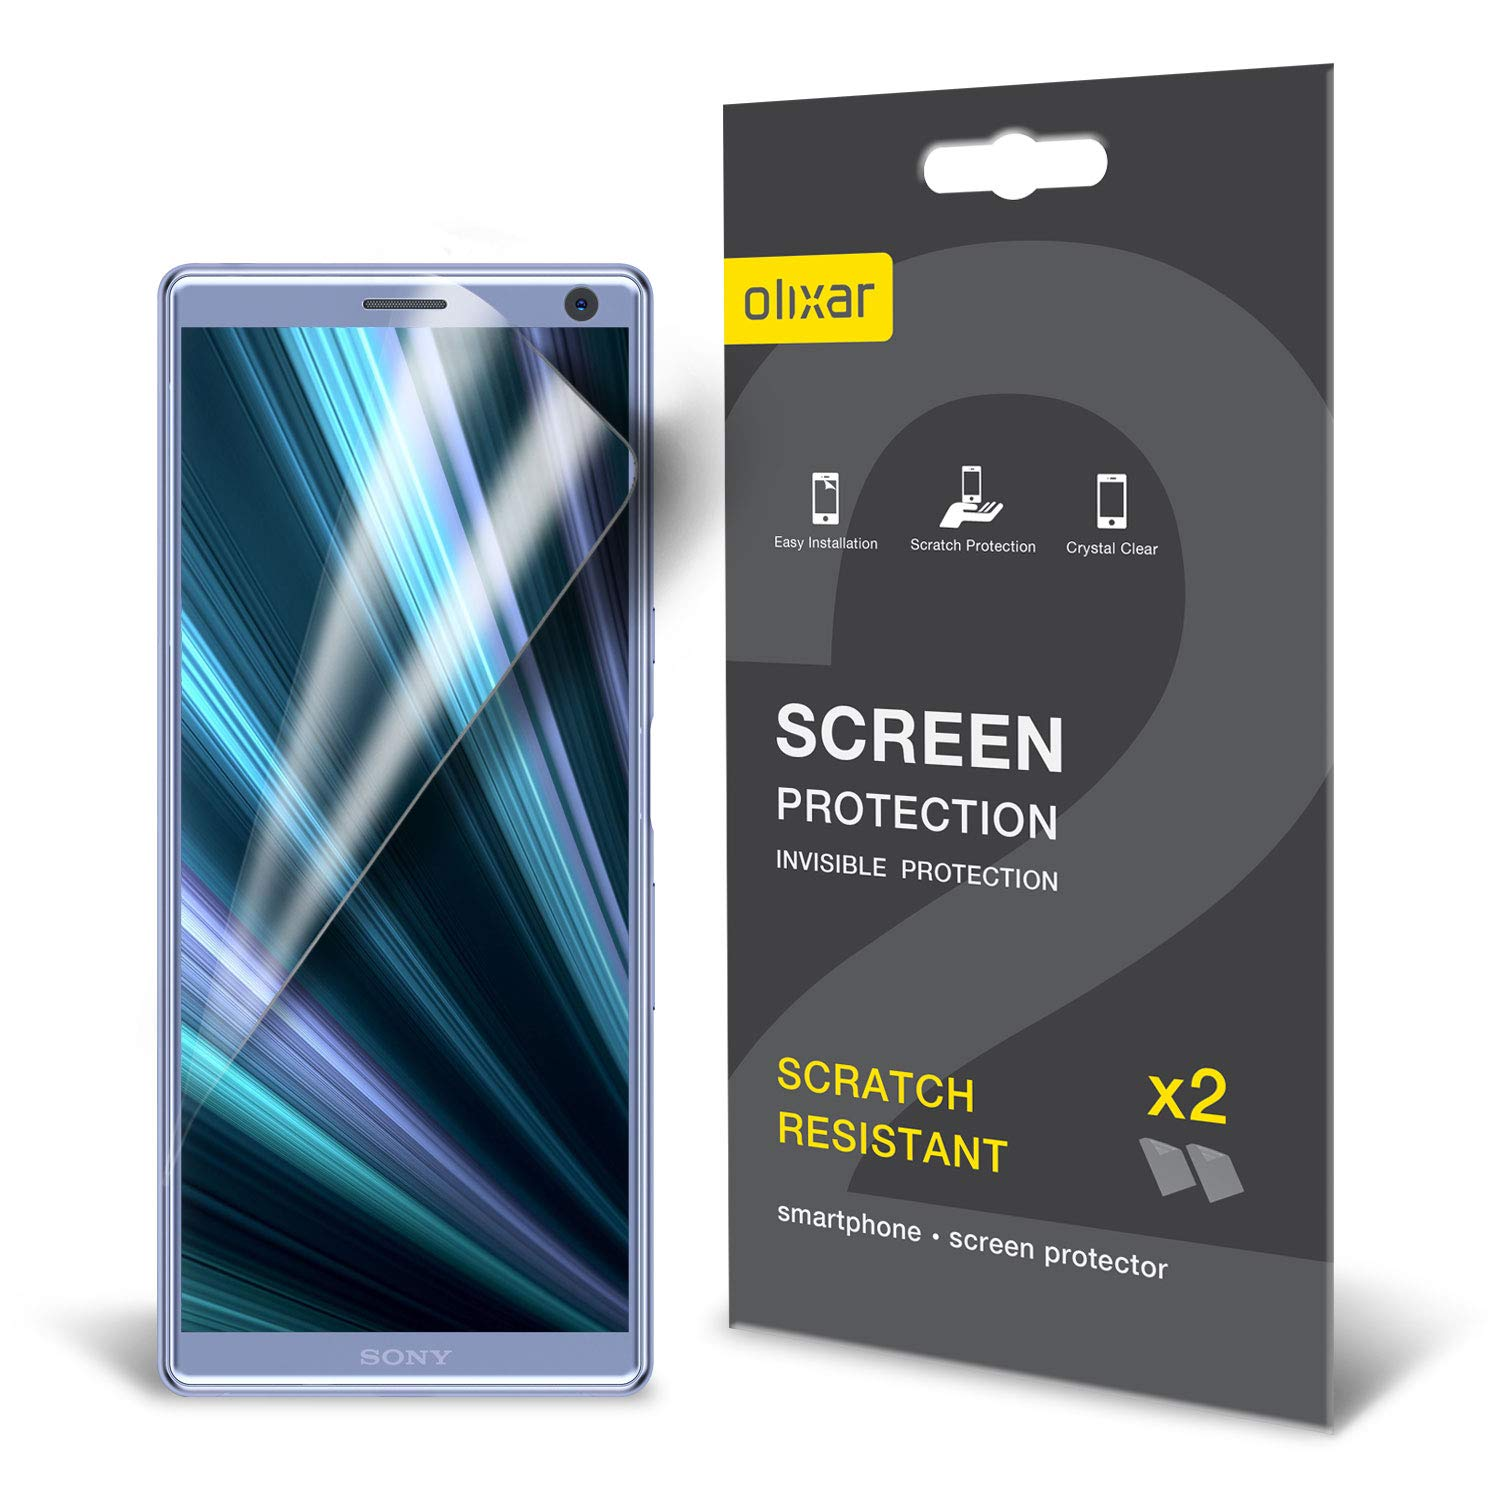 Olixar for Sony Xperia 10 Screen Protector - Film Protection - Case Friendly - Easy Application Card and Cleaning Cloth Included - 2 Pack